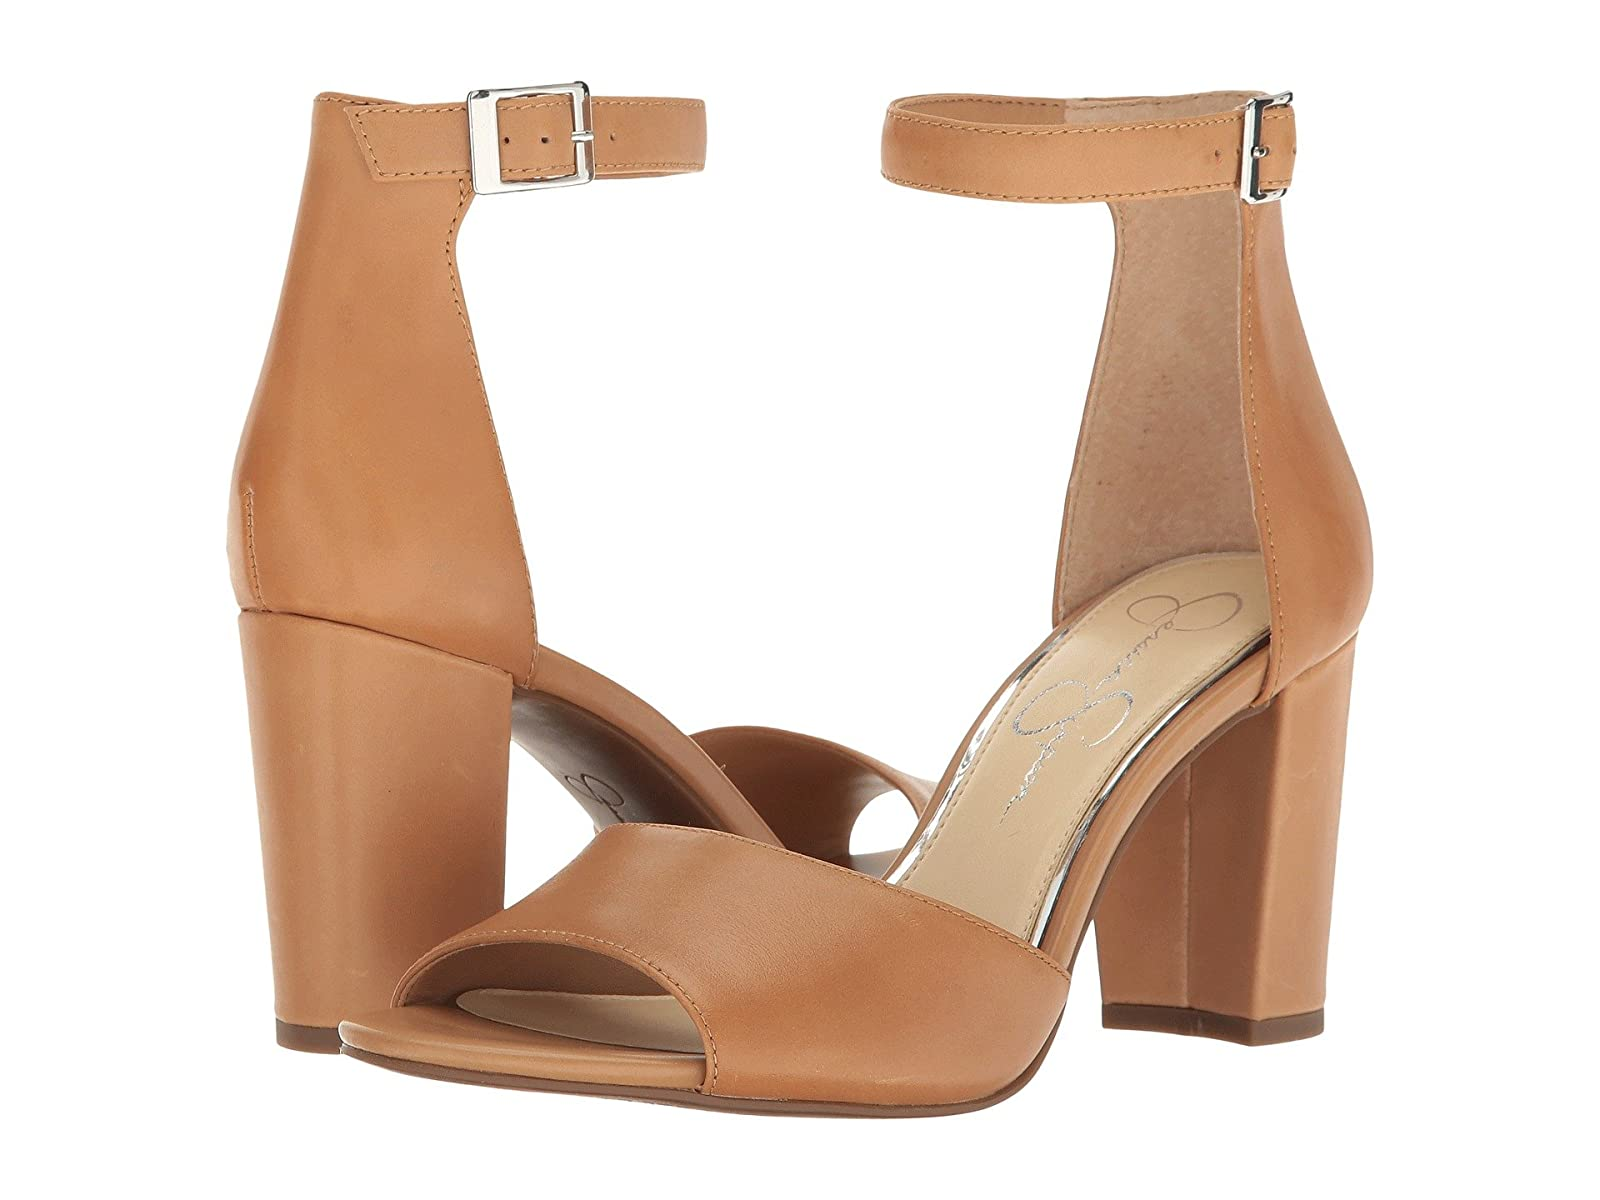 Jessica Simpson SherronCheap and distinctive eye-catching shoes